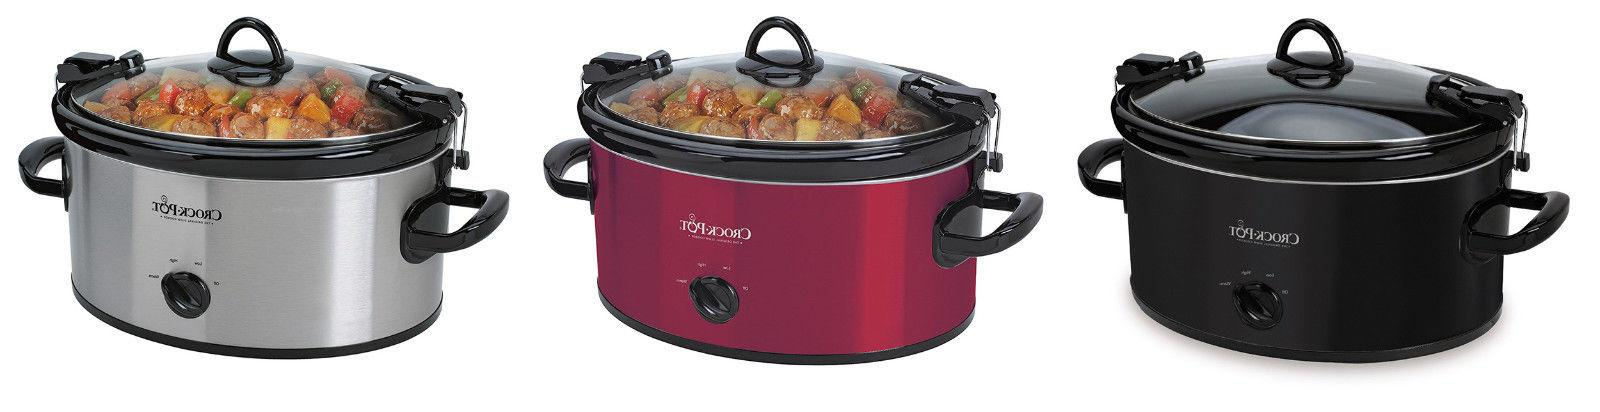 crock pot sccpvl600 cook n carry 6